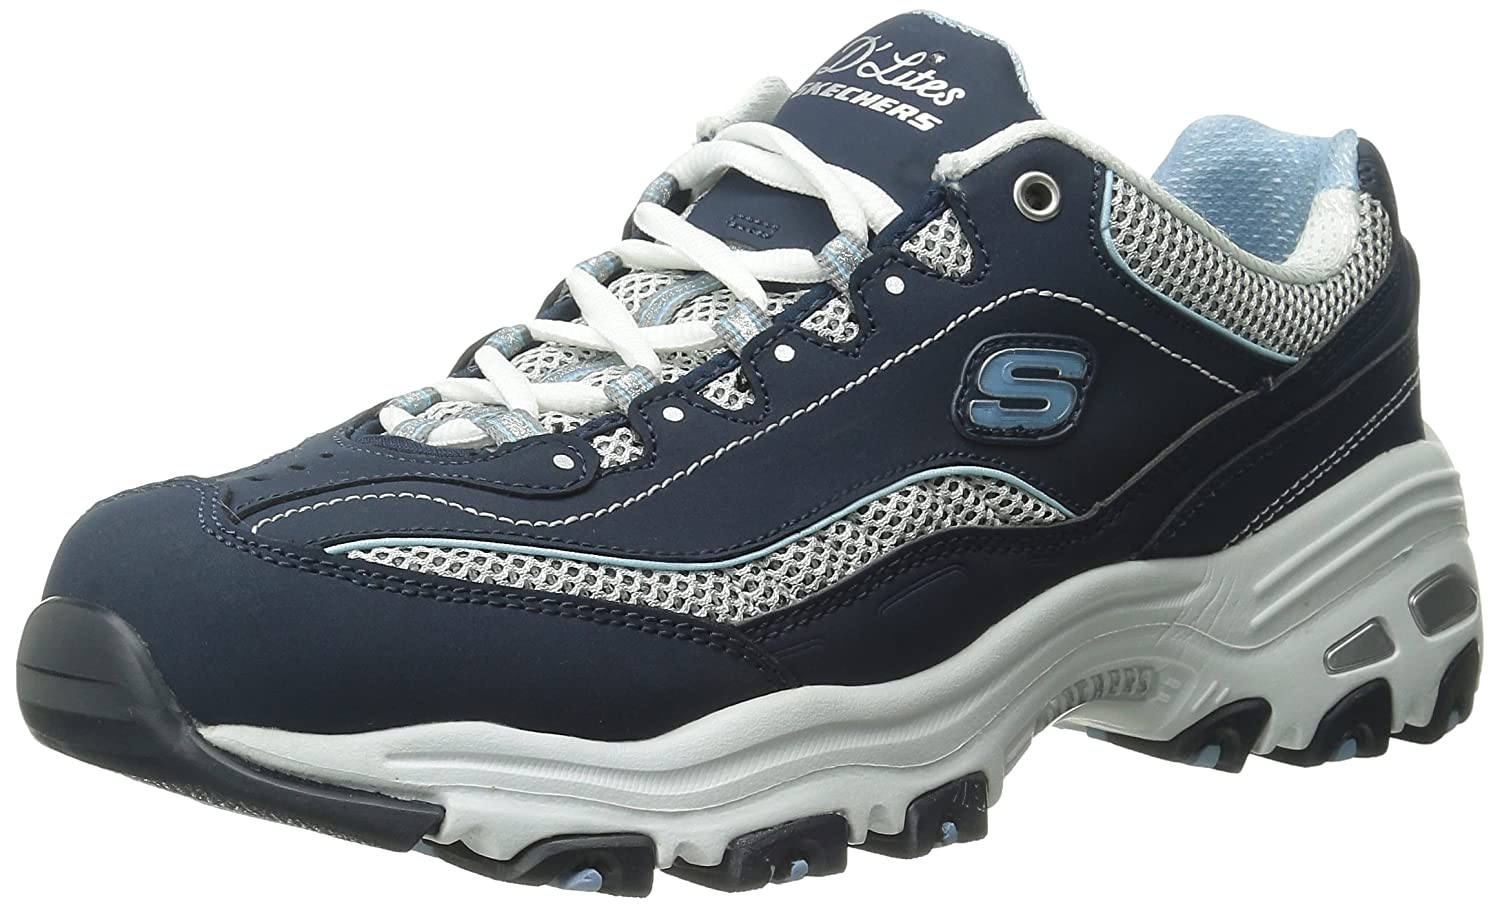 Skechers Women's D'Lites Memory Foam Lace up Sneaker